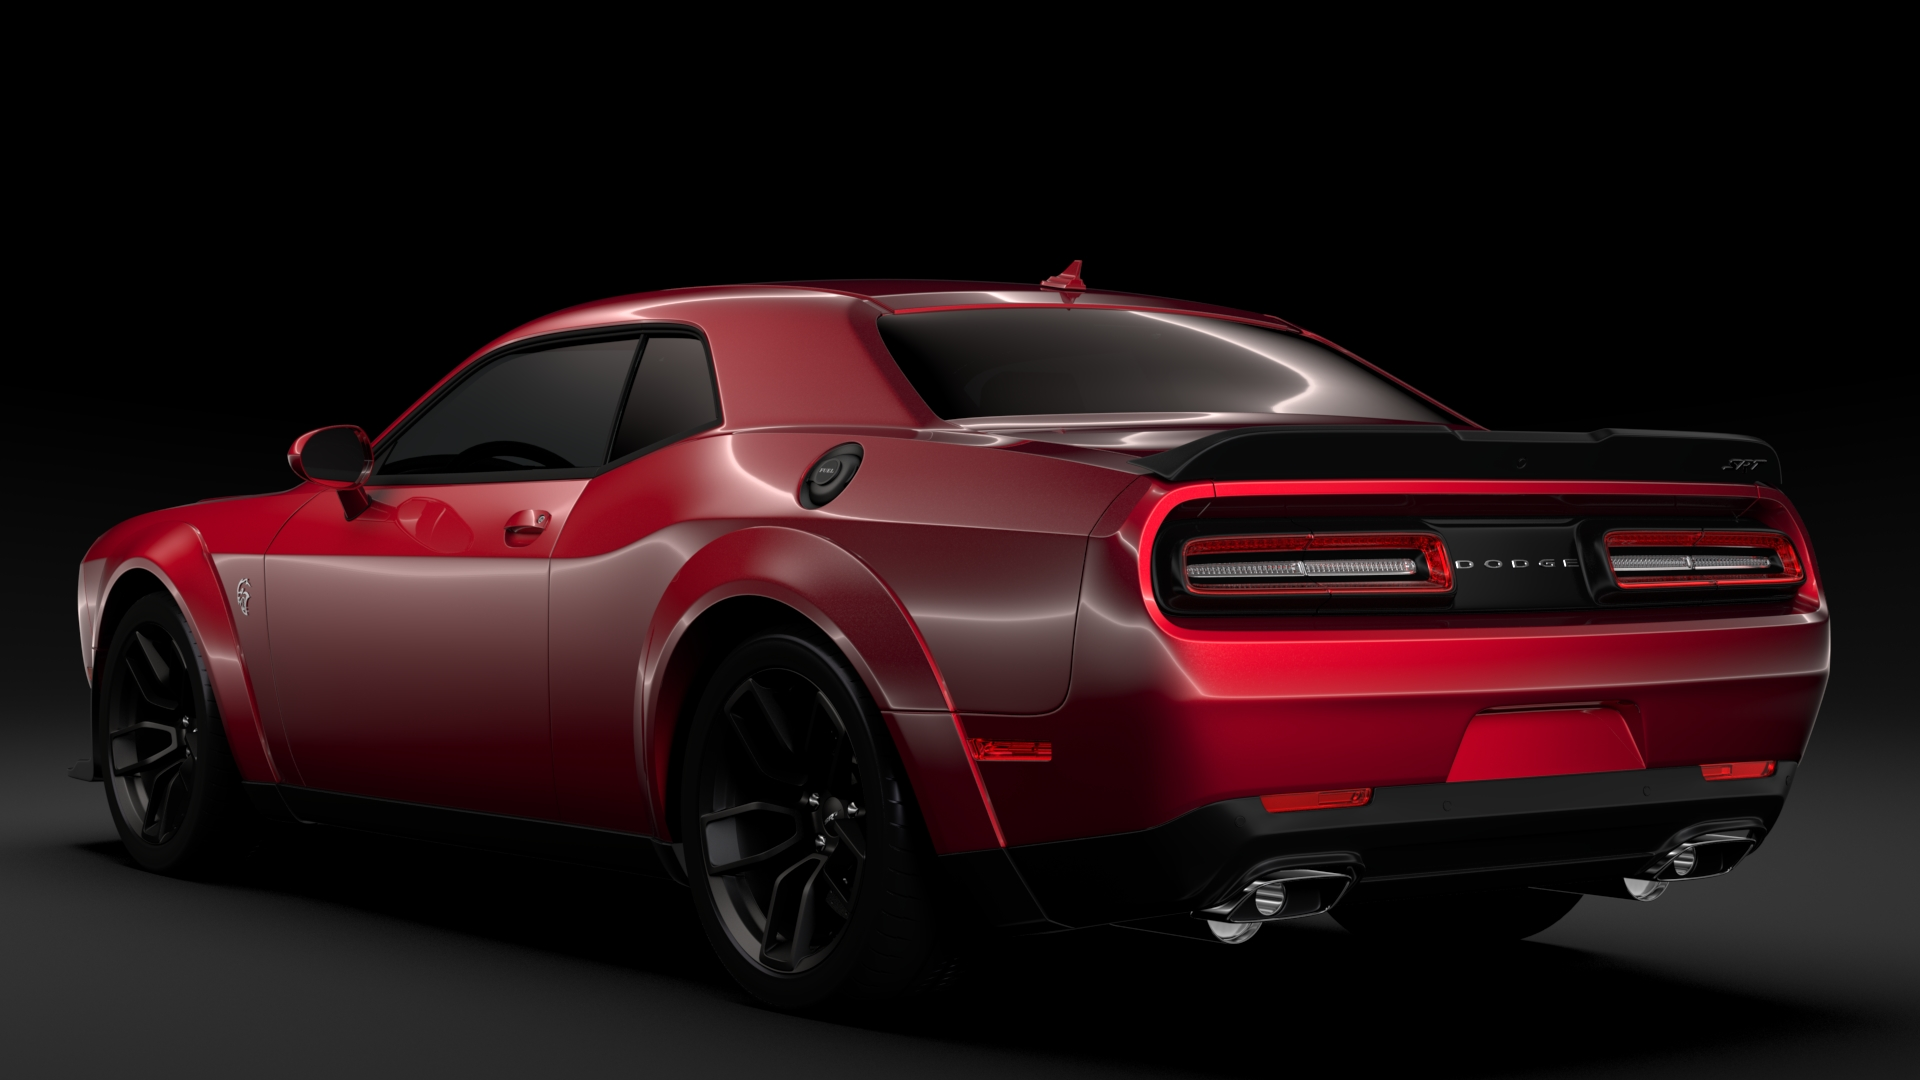 dodge challenger srt hellcat widebody 2018 3d model buy dodge challenger srt hellcat widebody. Black Bedroom Furniture Sets. Home Design Ideas